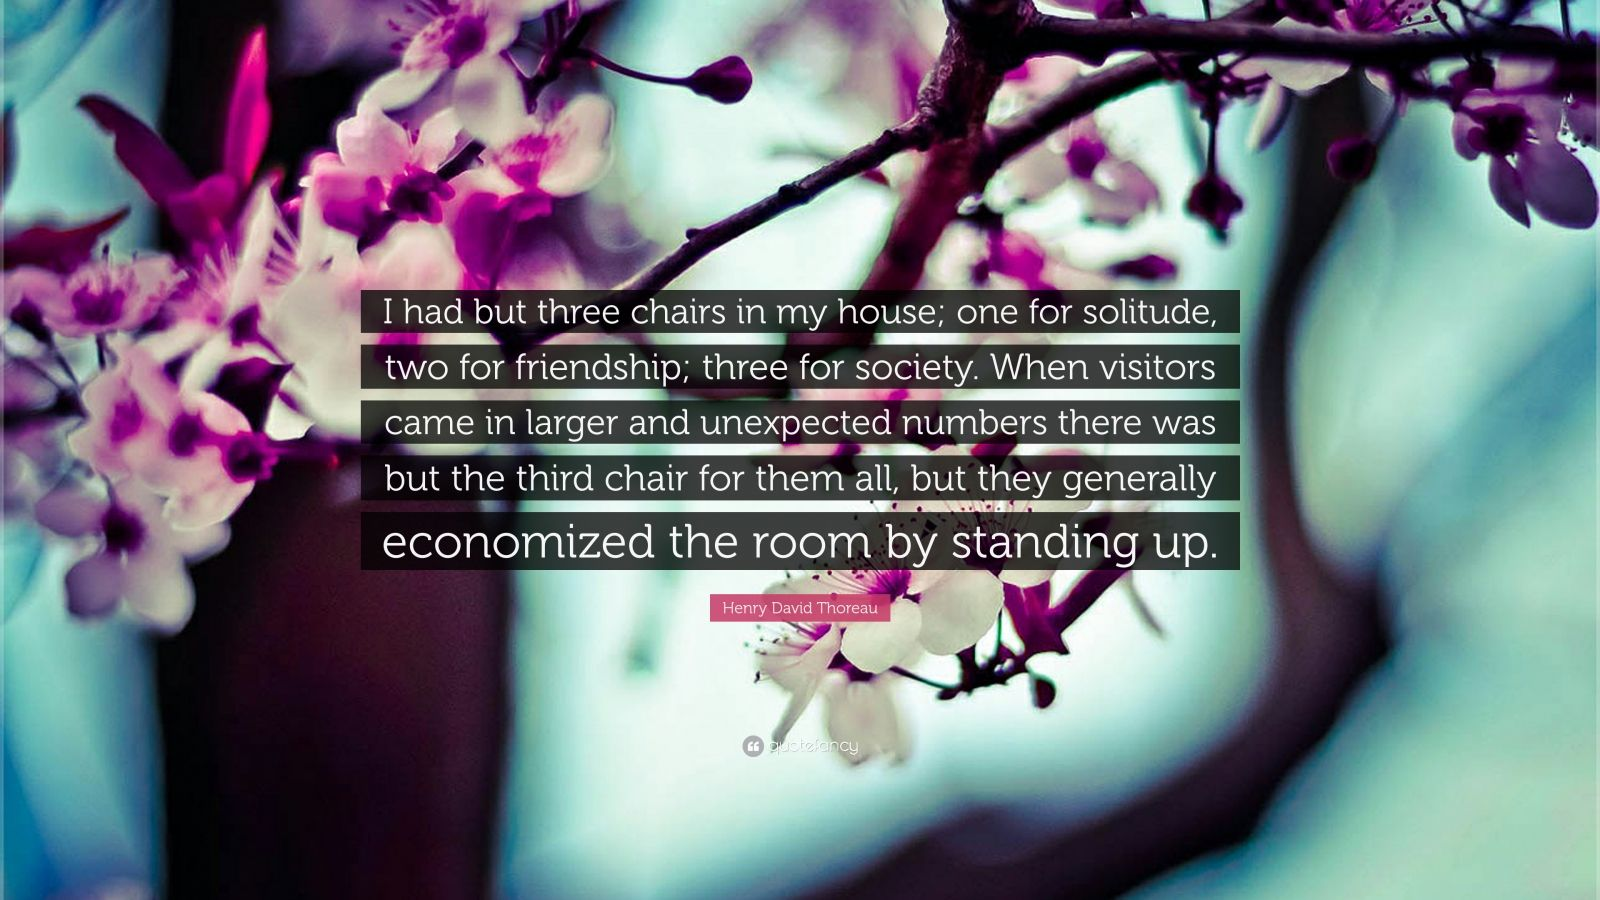 """Henry David Thoreau Quote: """"I had but three chairs in my house; one for solitude, two for friendship; three for society. When visitors came in larger and unexpected numbers there was but the third chair for them all, but they generally economized the room by standing up."""""""